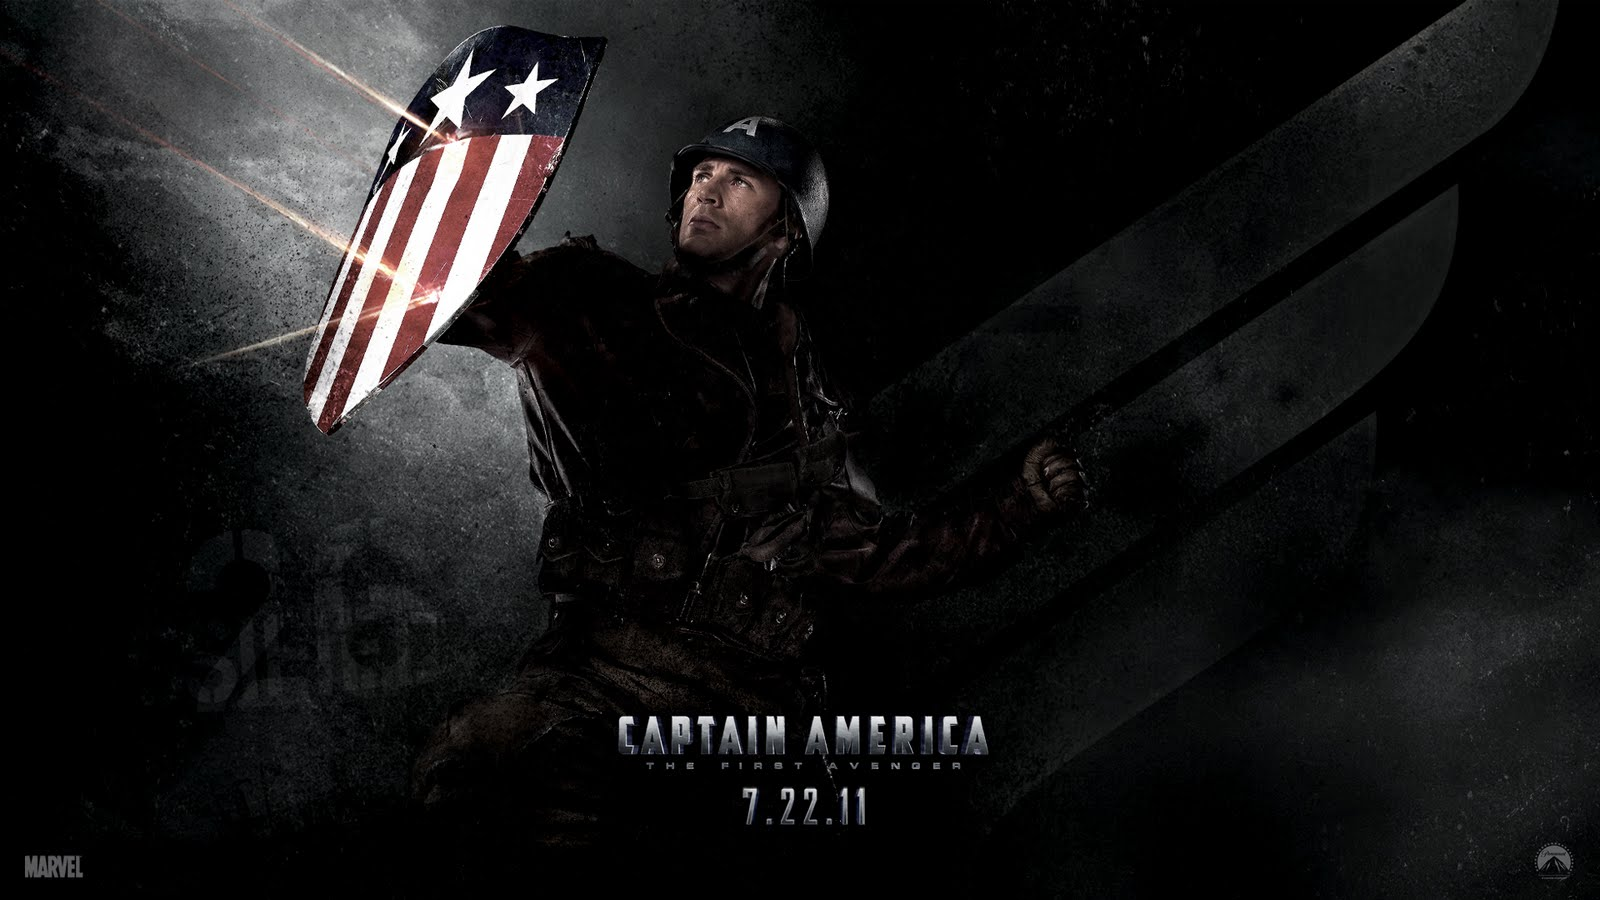 http://1.bp.blogspot.com/-5UwtkHWDfsY/TjQ4NzW_VbI/AAAAAAAAB5E/8GwJbU3z9qM/s1600/Chris_Evans_in_Captain_America%2B_The_First_Avenger_Wallpaper_6_1024.jpg